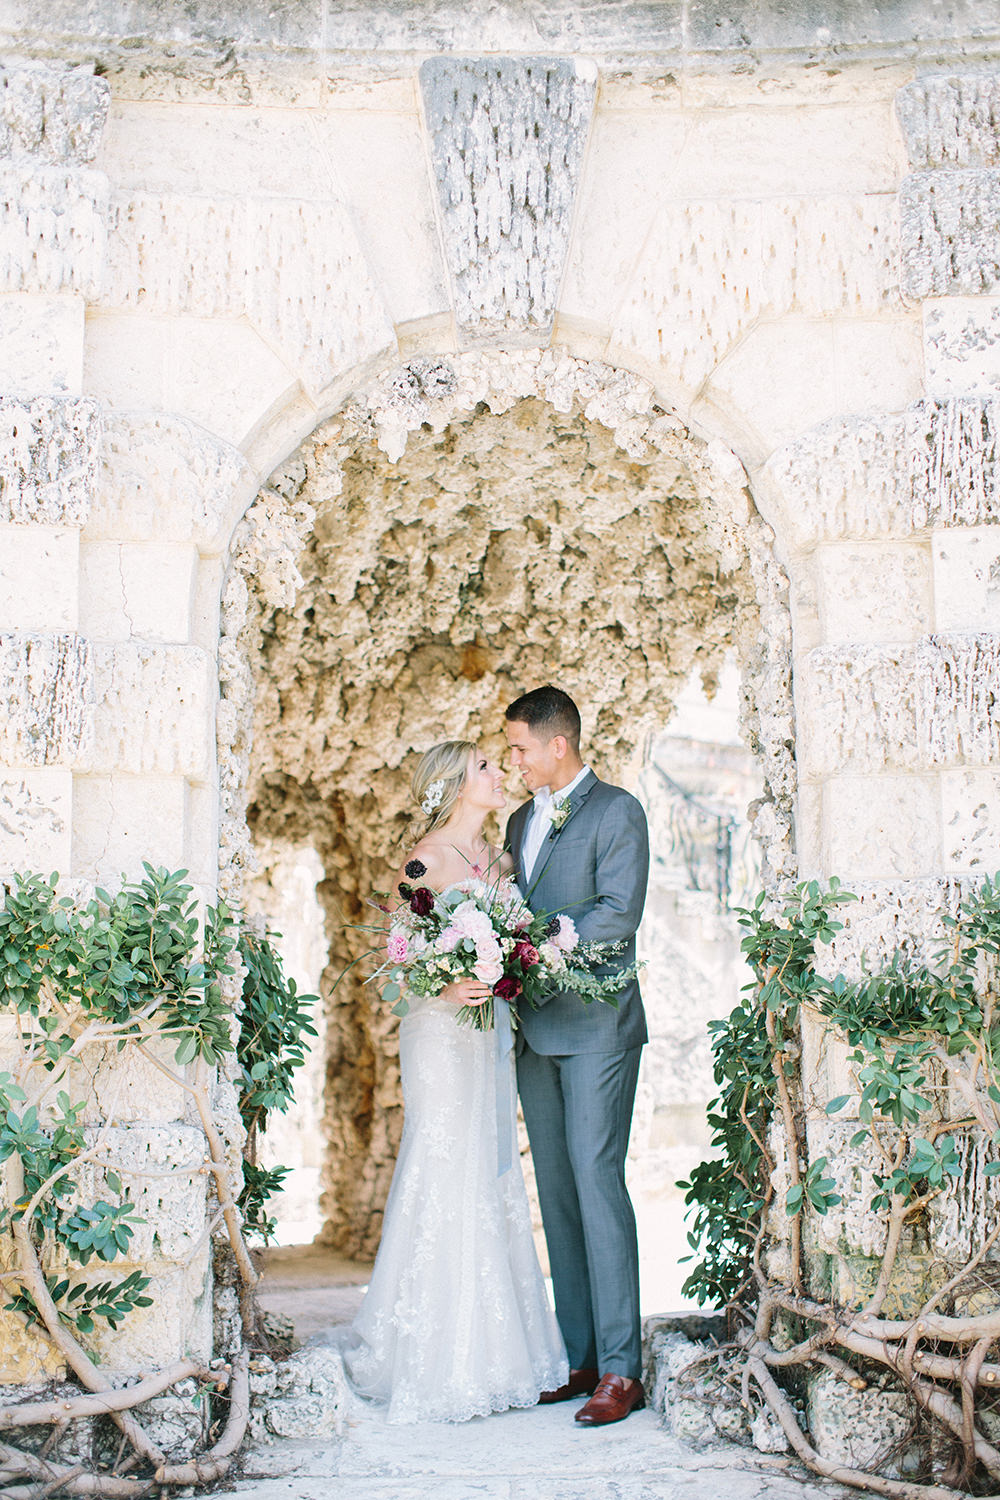 Old World Wedding Editorial at Vizcaya Museum - photo by Erica J Photography http://ruffledblog.com/old-world-wedding-editorial-at-vizcaya-museum